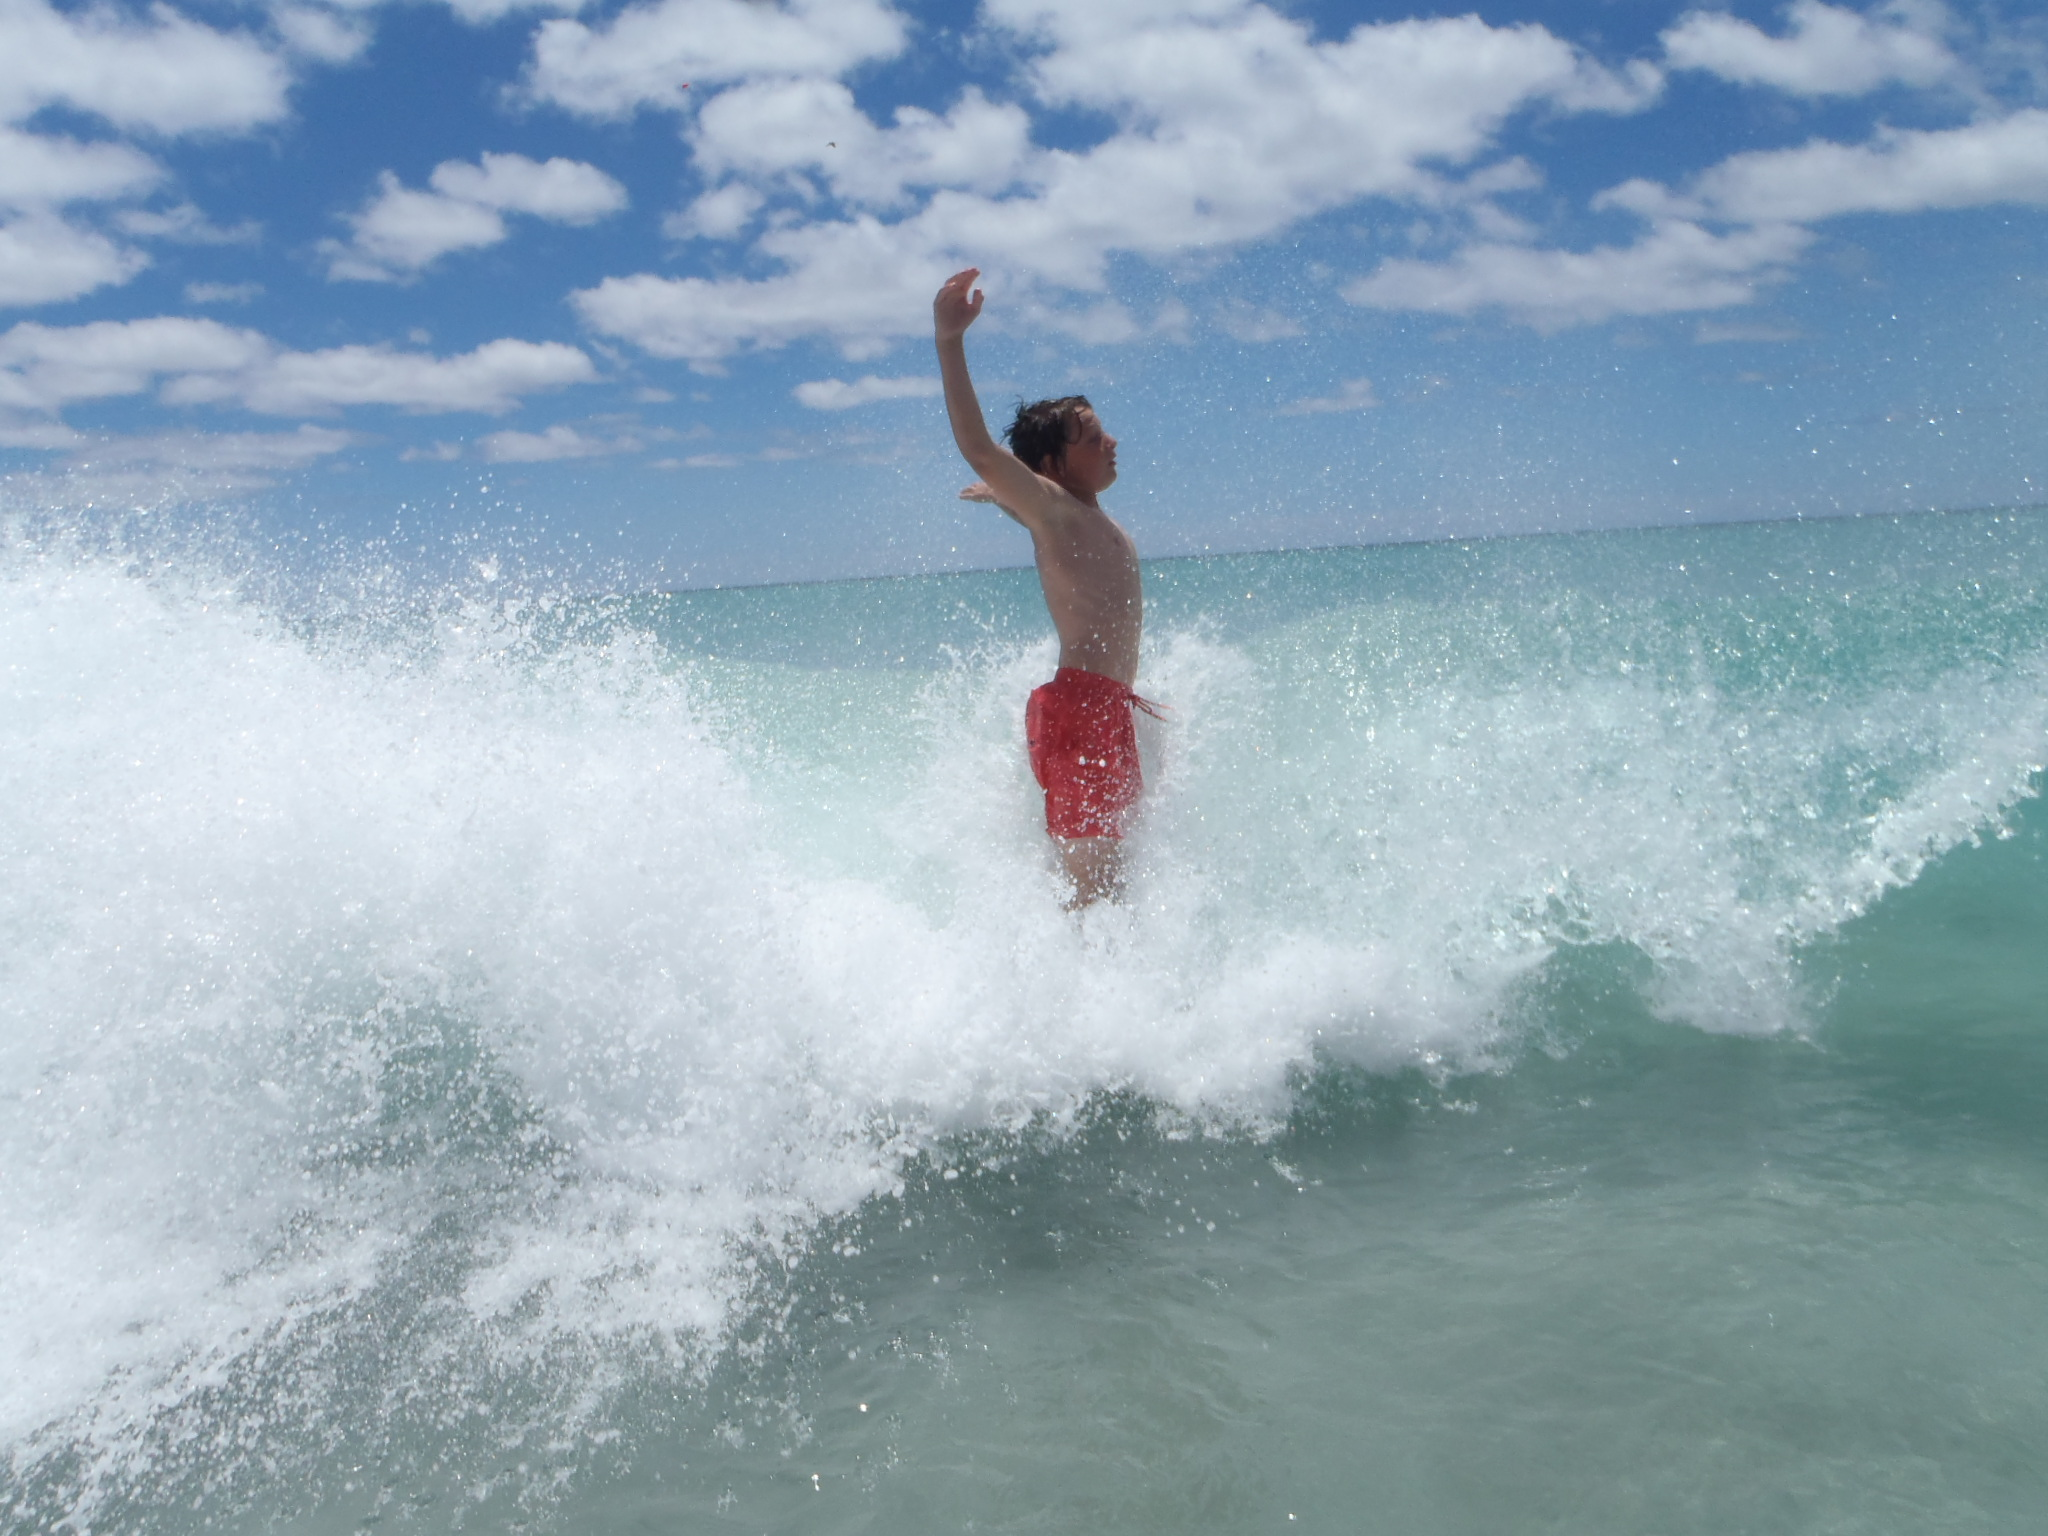 Boy jumping in the waves.  Clear blue sky. Beautiful summer day.